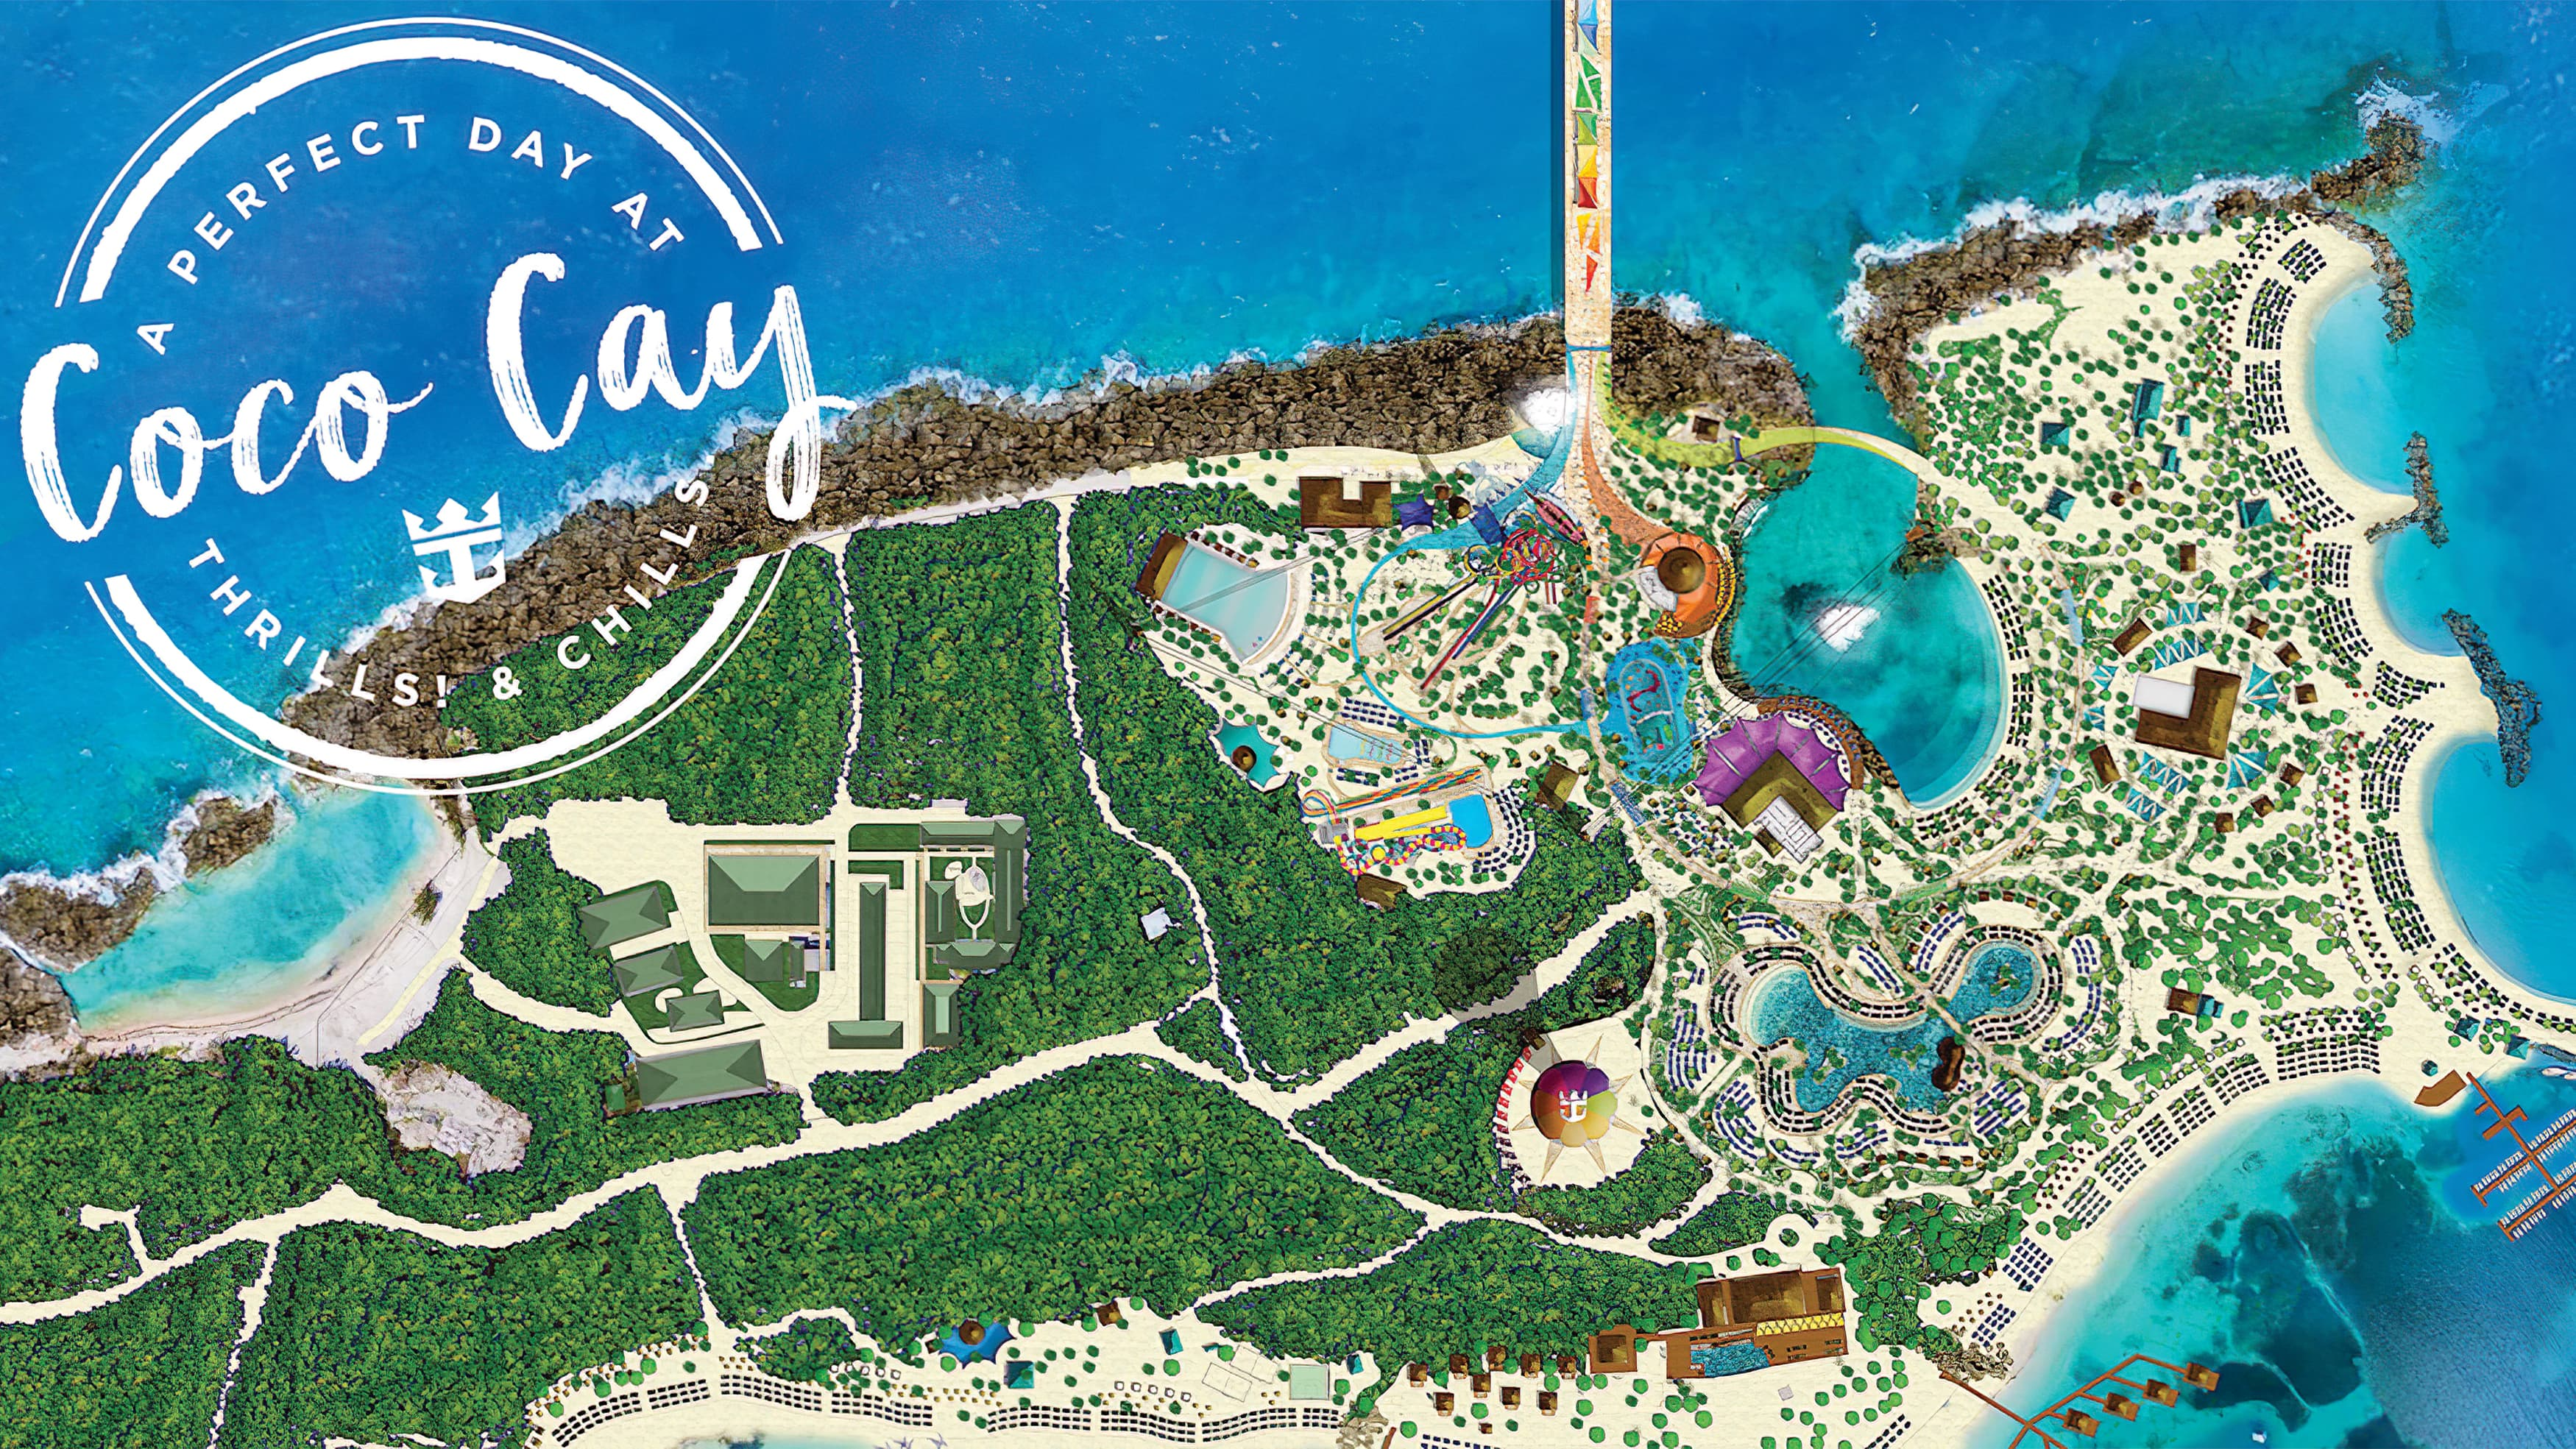 A playful, illustrative map of Coco Cay Island located in the Bahamas